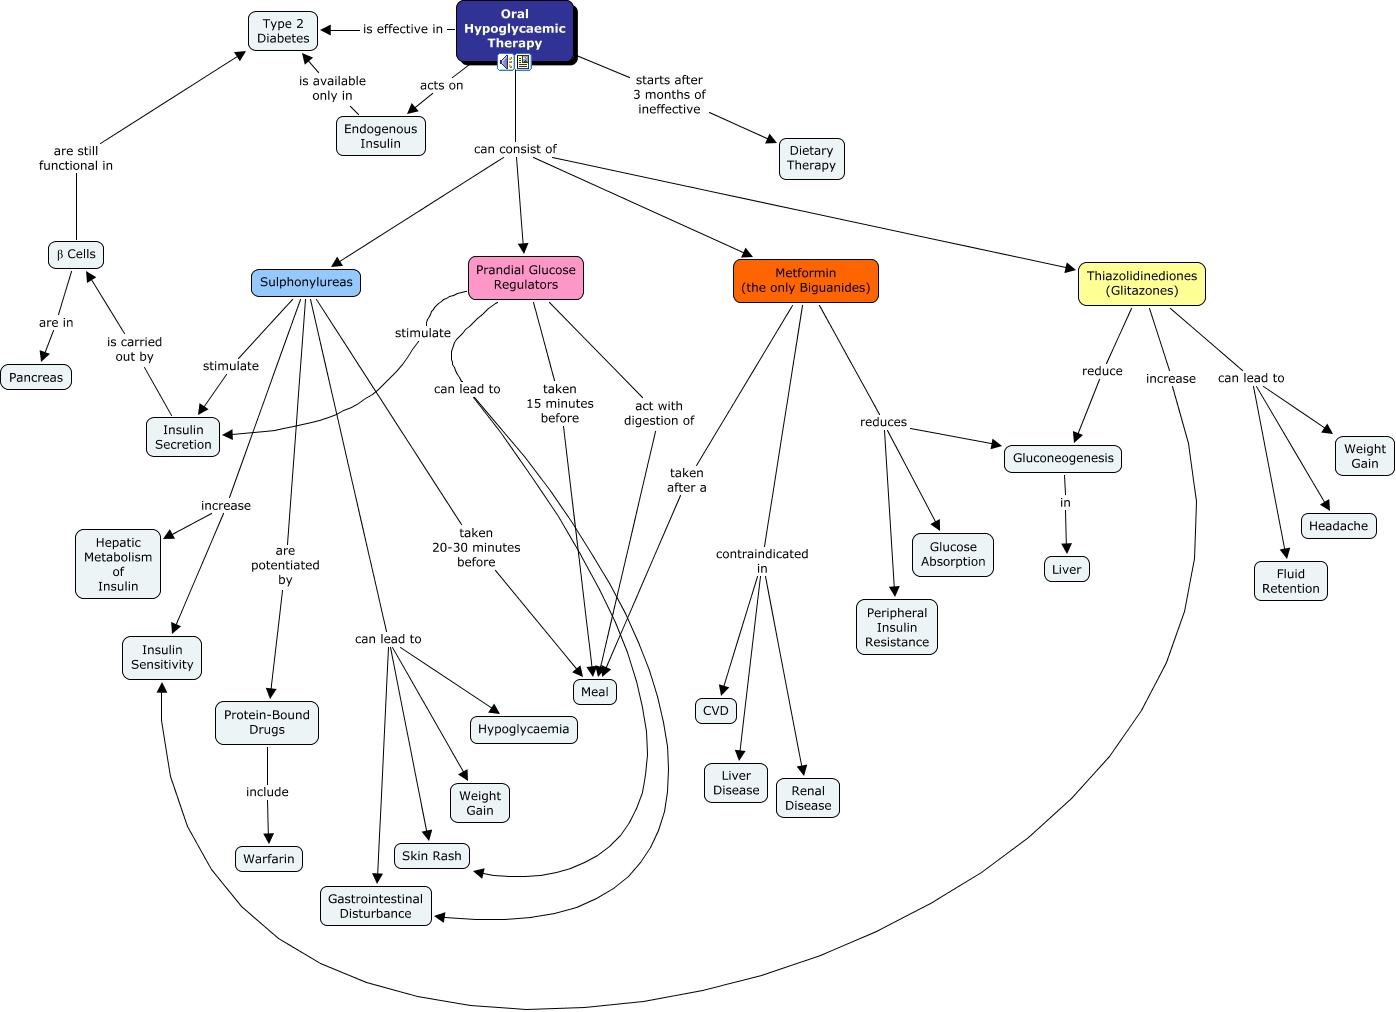 Diabetes Oral Hypoglycaemic Therapy - Oral map